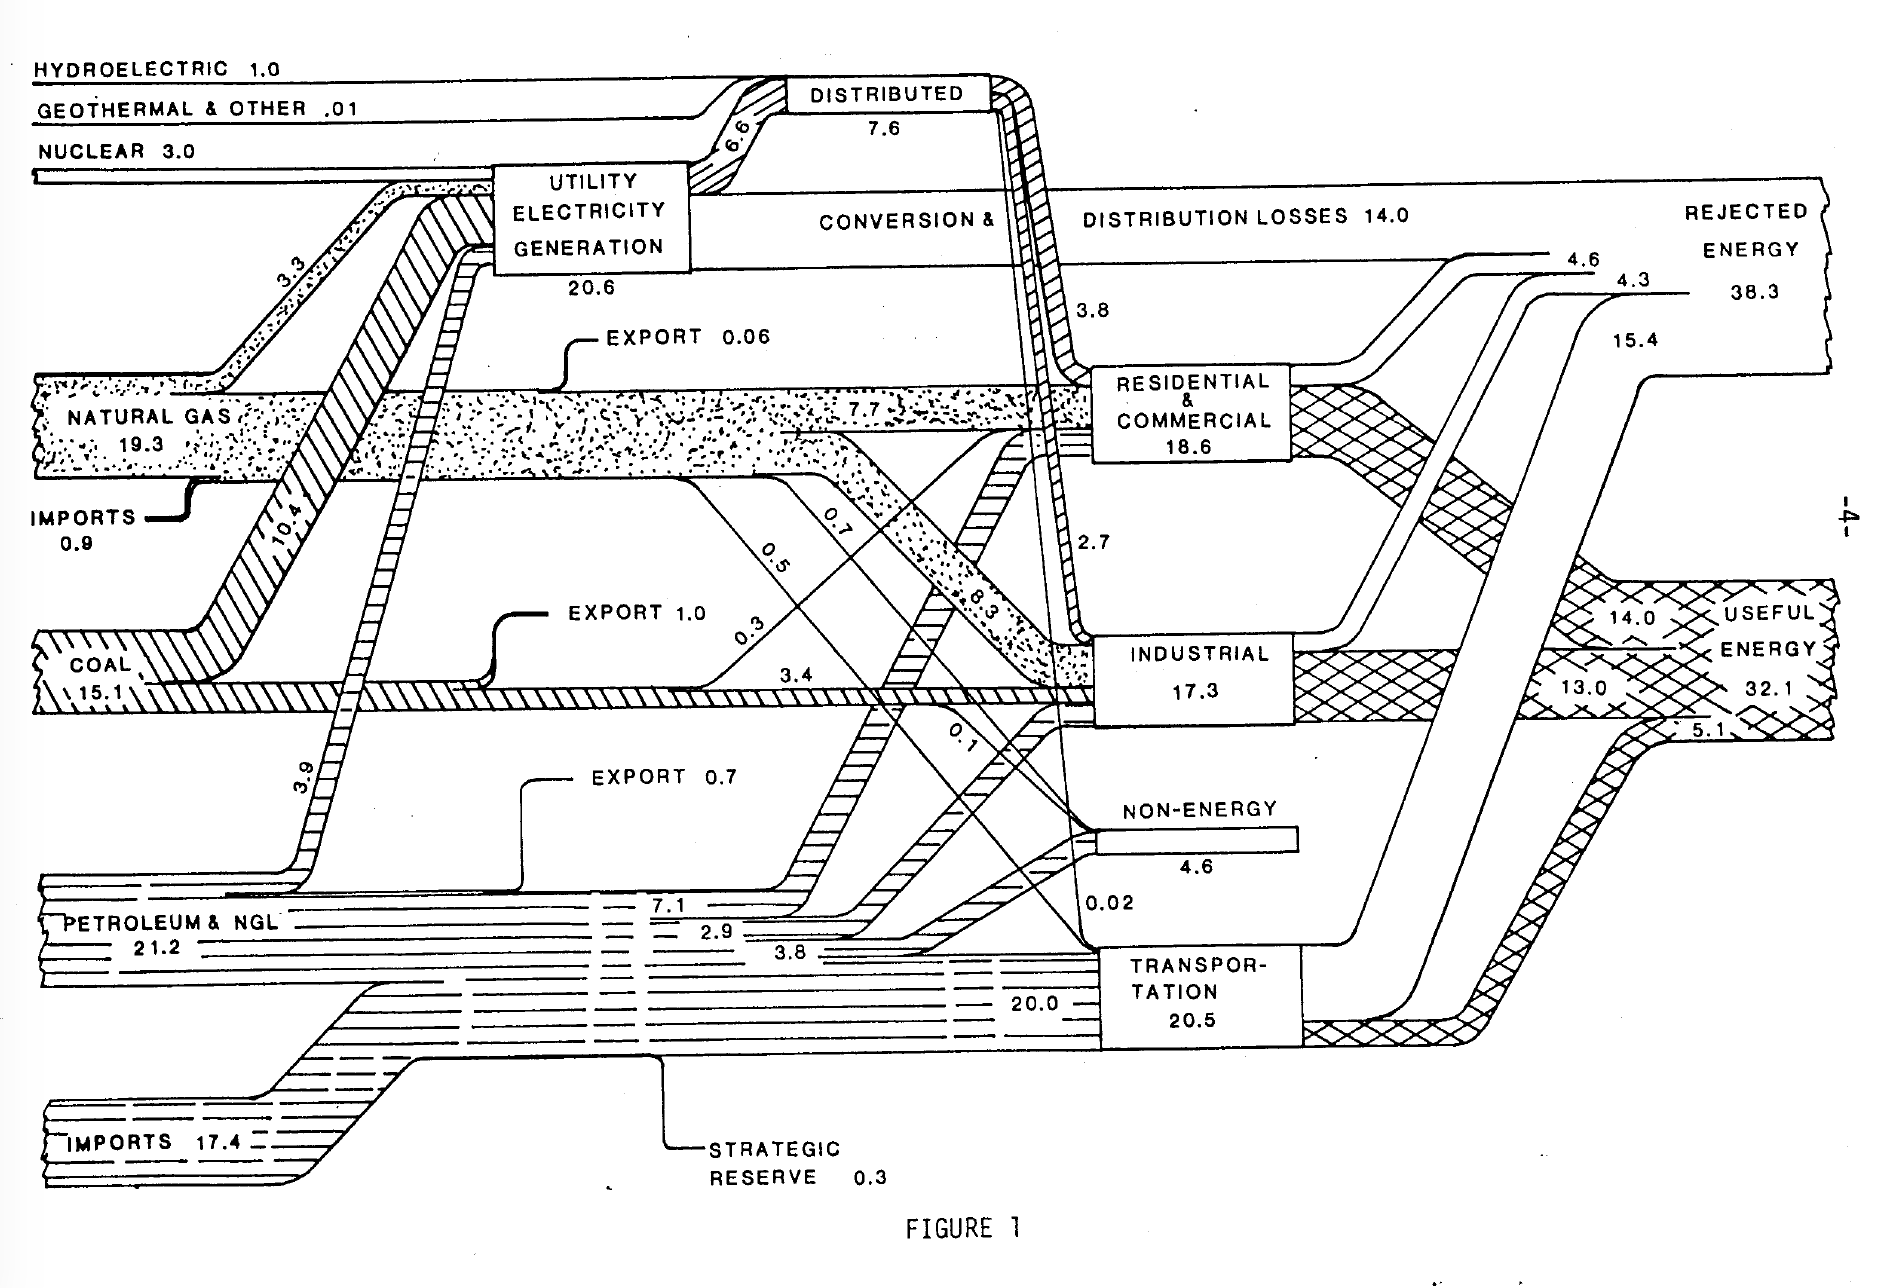 US energy flows diagram for the year 1978, from the Lawrence Livermore National Lab